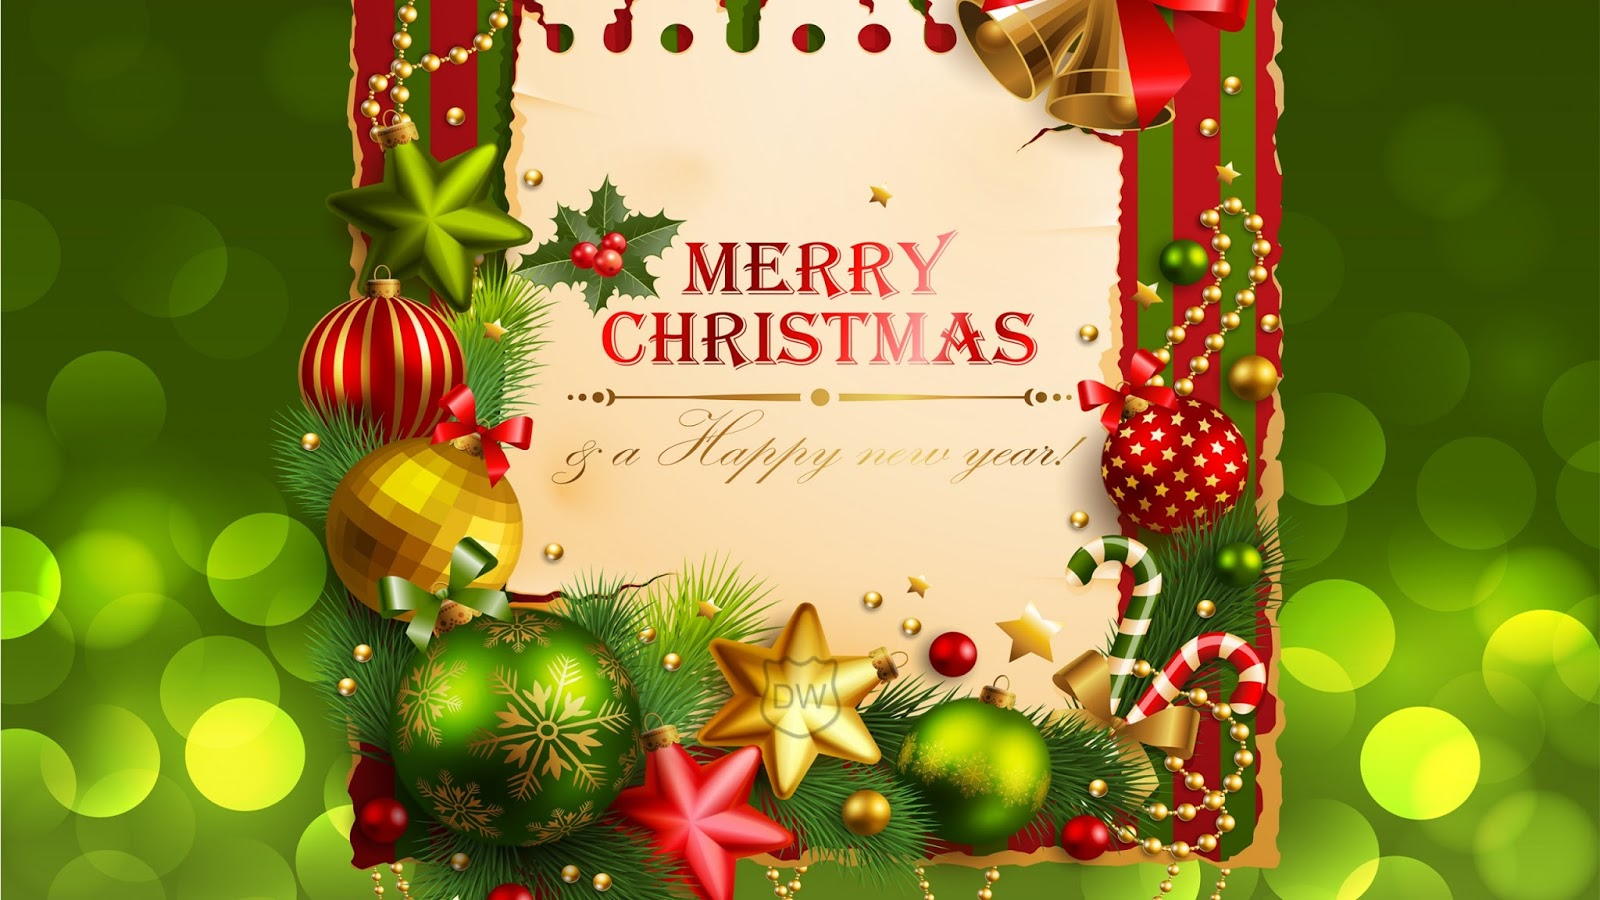 Top 30 Christmas Wishes Quotes 2016 – Christmas Wishes Sample